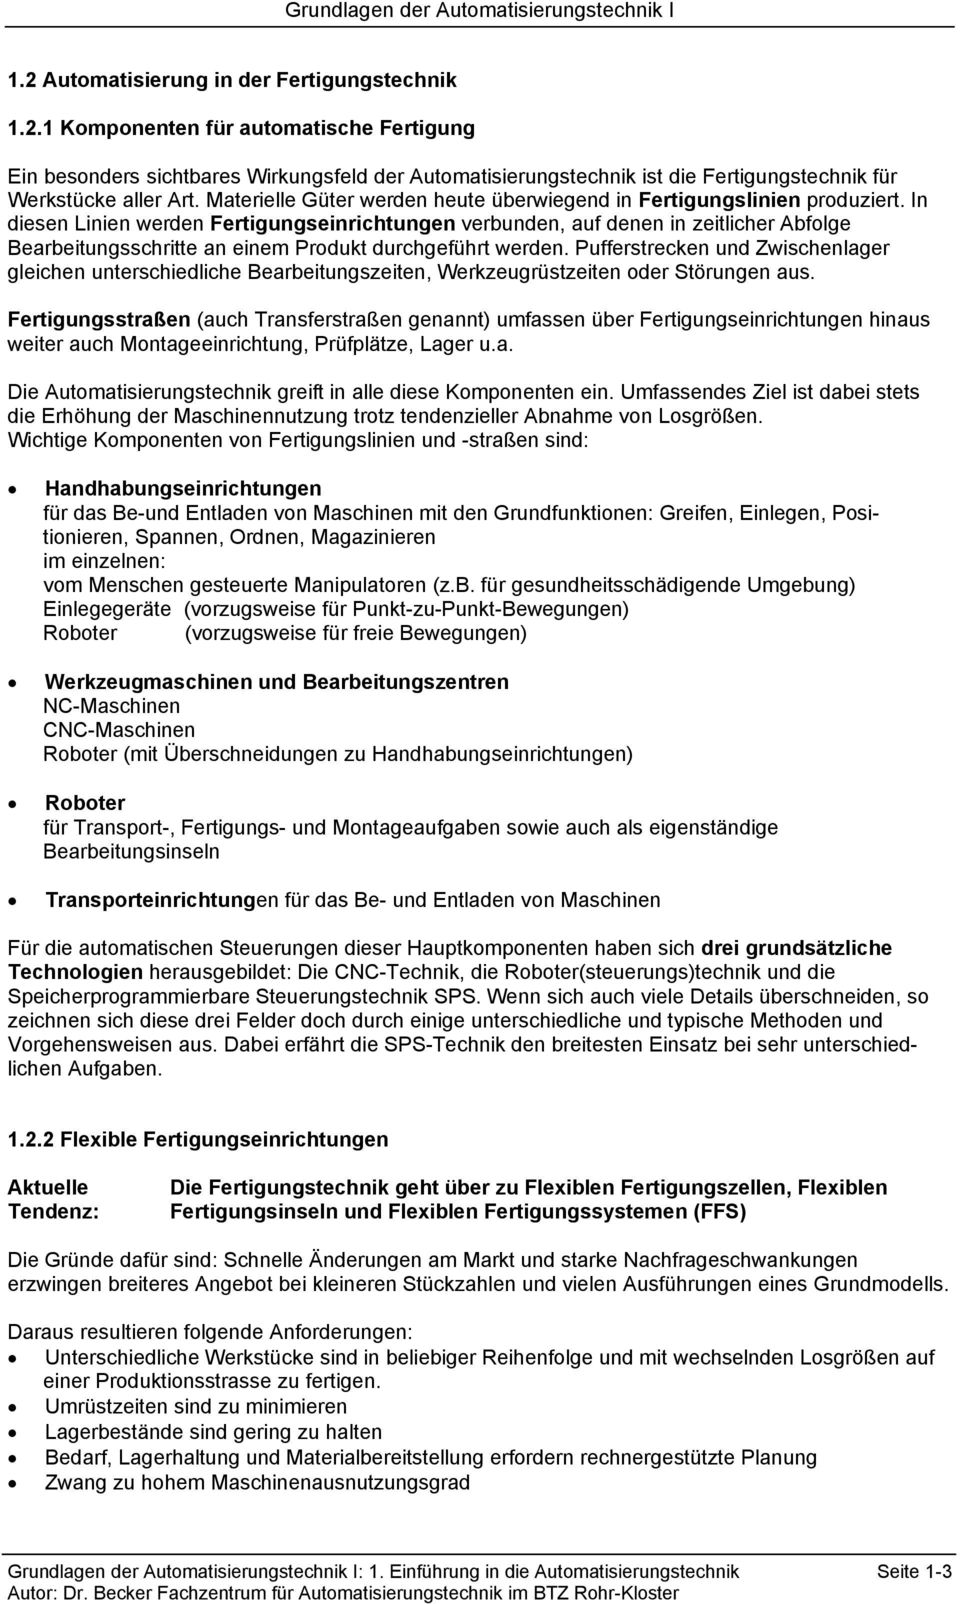 Tolle Bewegung In Limine Vorlage Ideen - Entry Level Resume Vorlagen ...